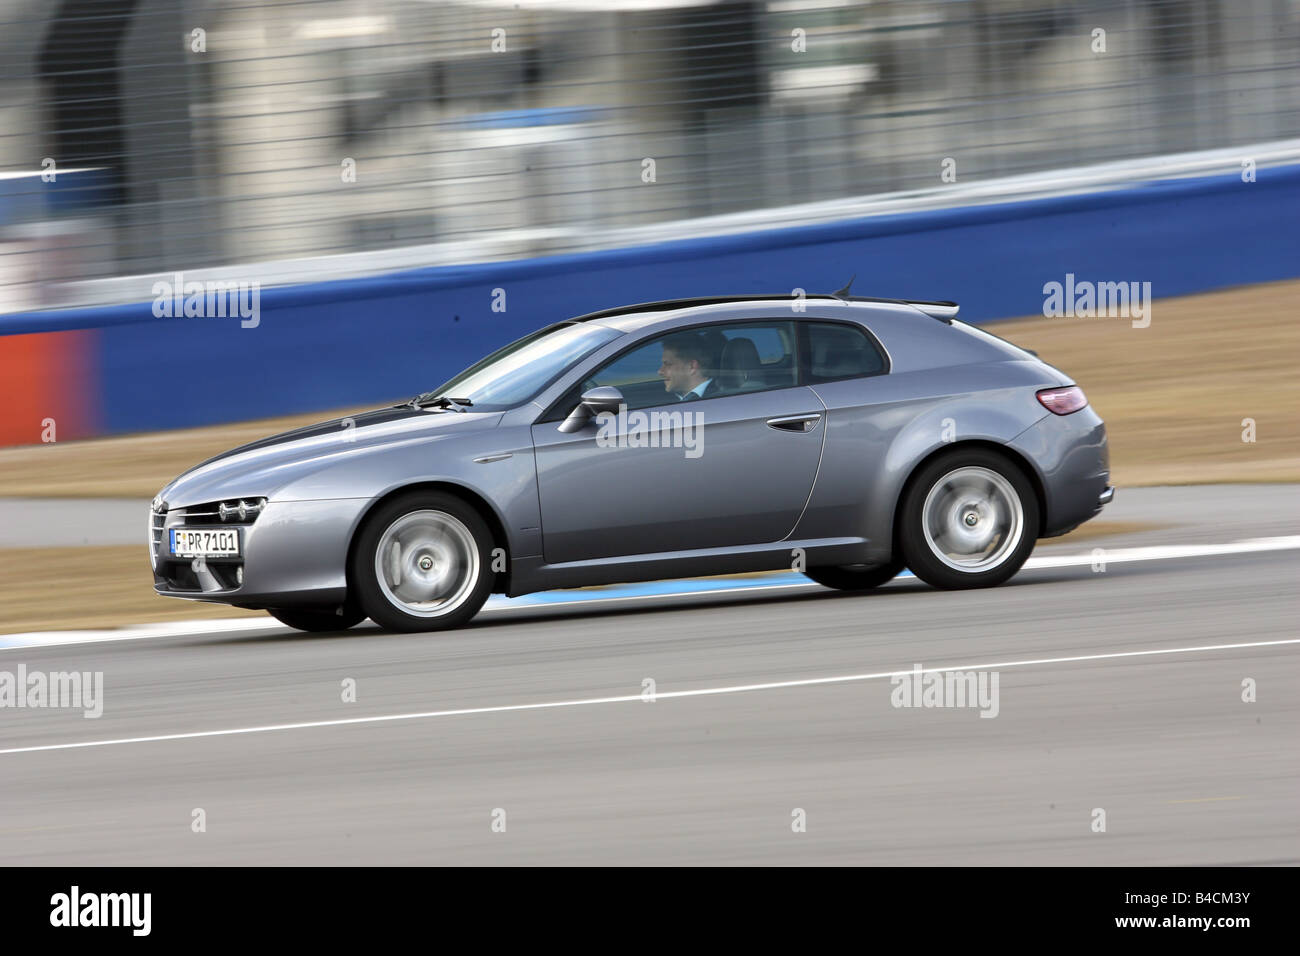 alfa romeo brera stock photos & alfa romeo brera stock images - alamy